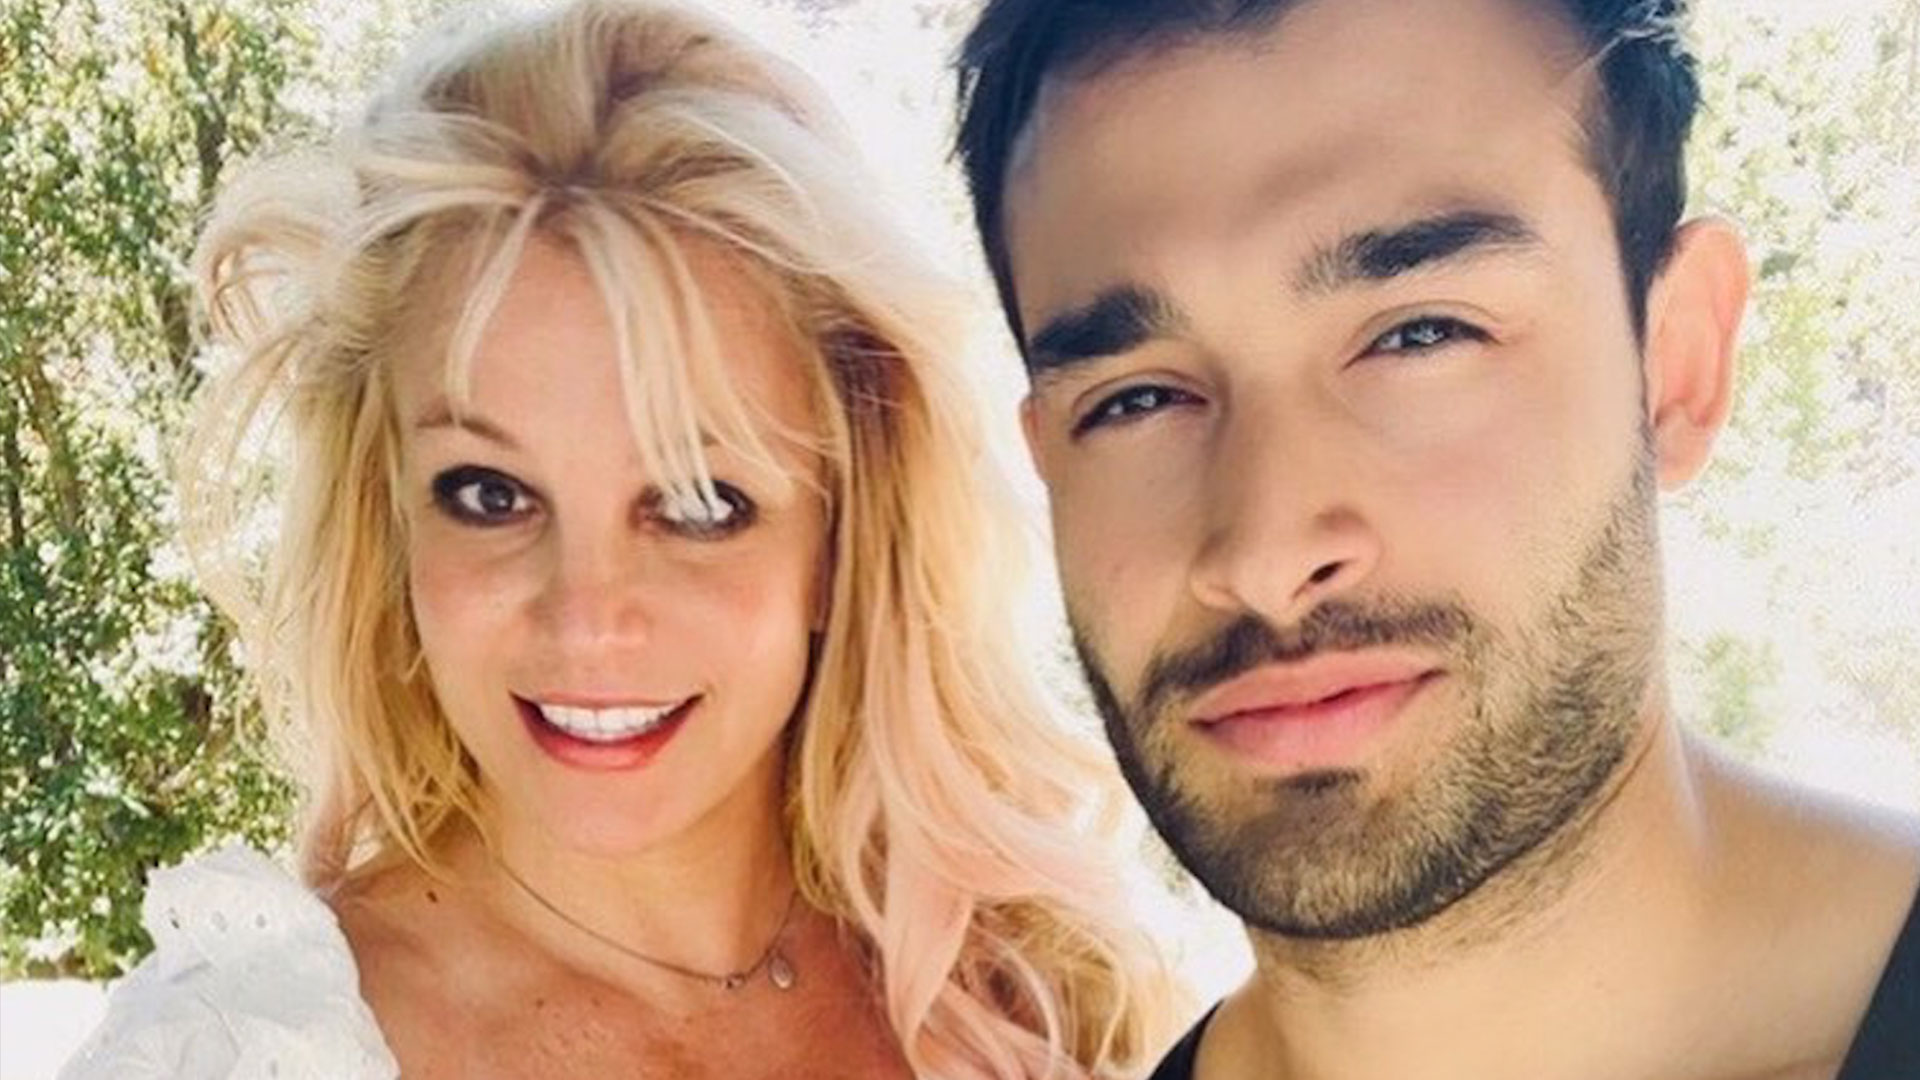 Britney Spears Thanks Sam Asghari For His Support Through 'Hardest Years' Of Her Life